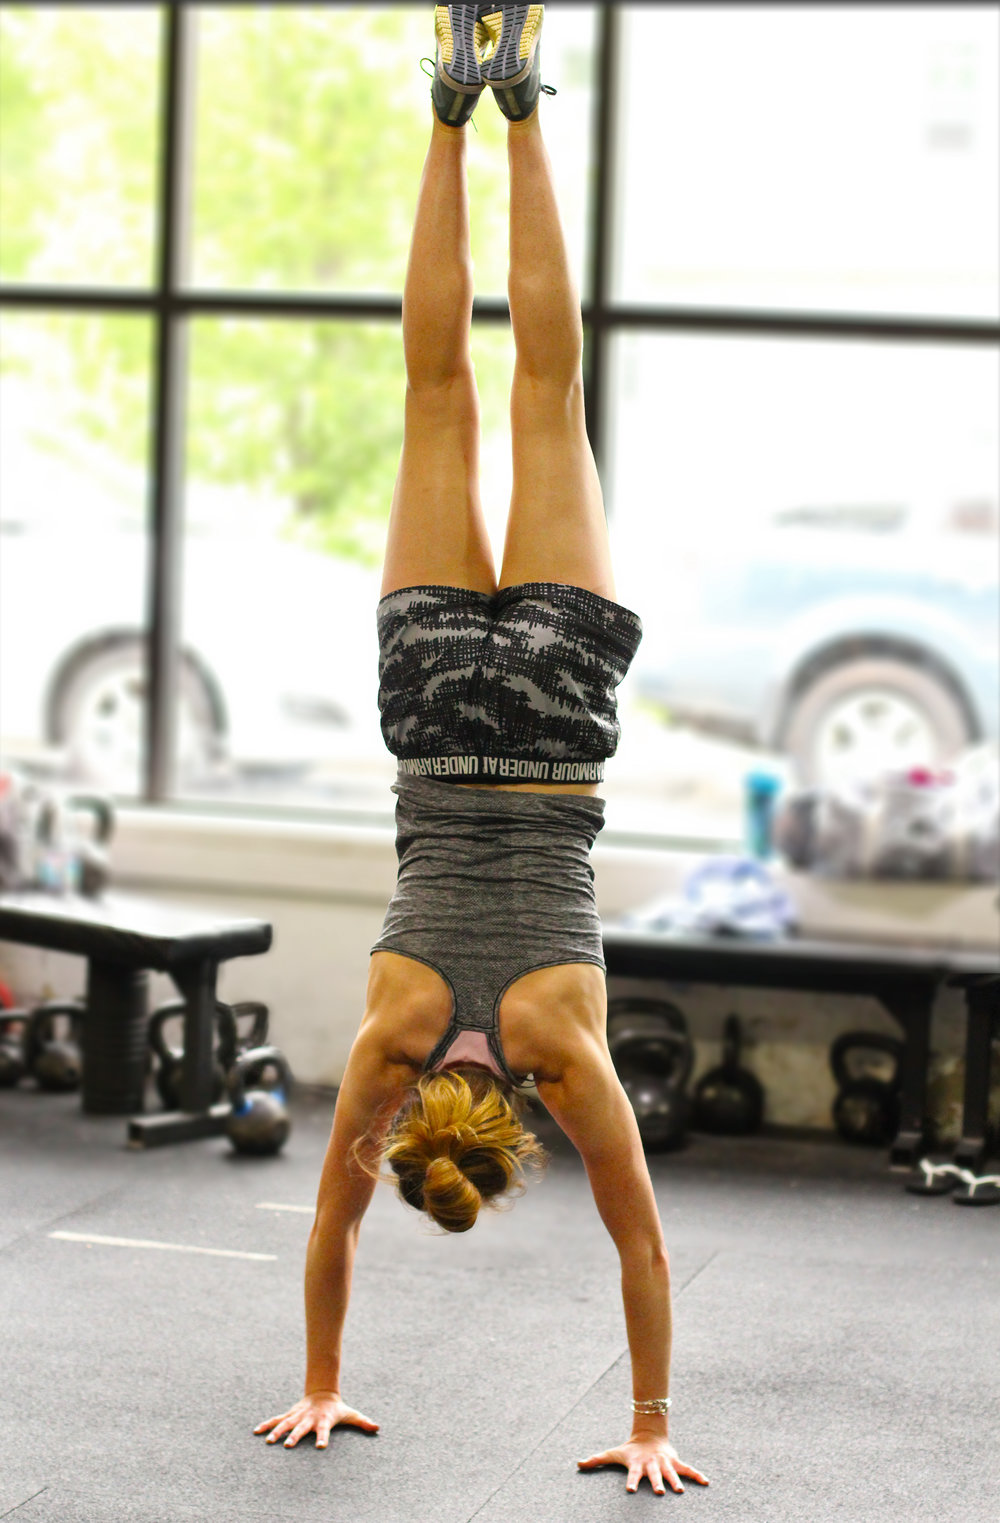 Did you know? Of the many transferrable benefits of practicing handstands to our overhead movements, as well as the increased proprioceptive awareness? Getting inverted also takes pressure off of the spine and helps flush out our various lymph glands. Isn't that cool? Perhaps even cooler is PVCF athlete, Michele Lafond nailing her handstand in this shot!